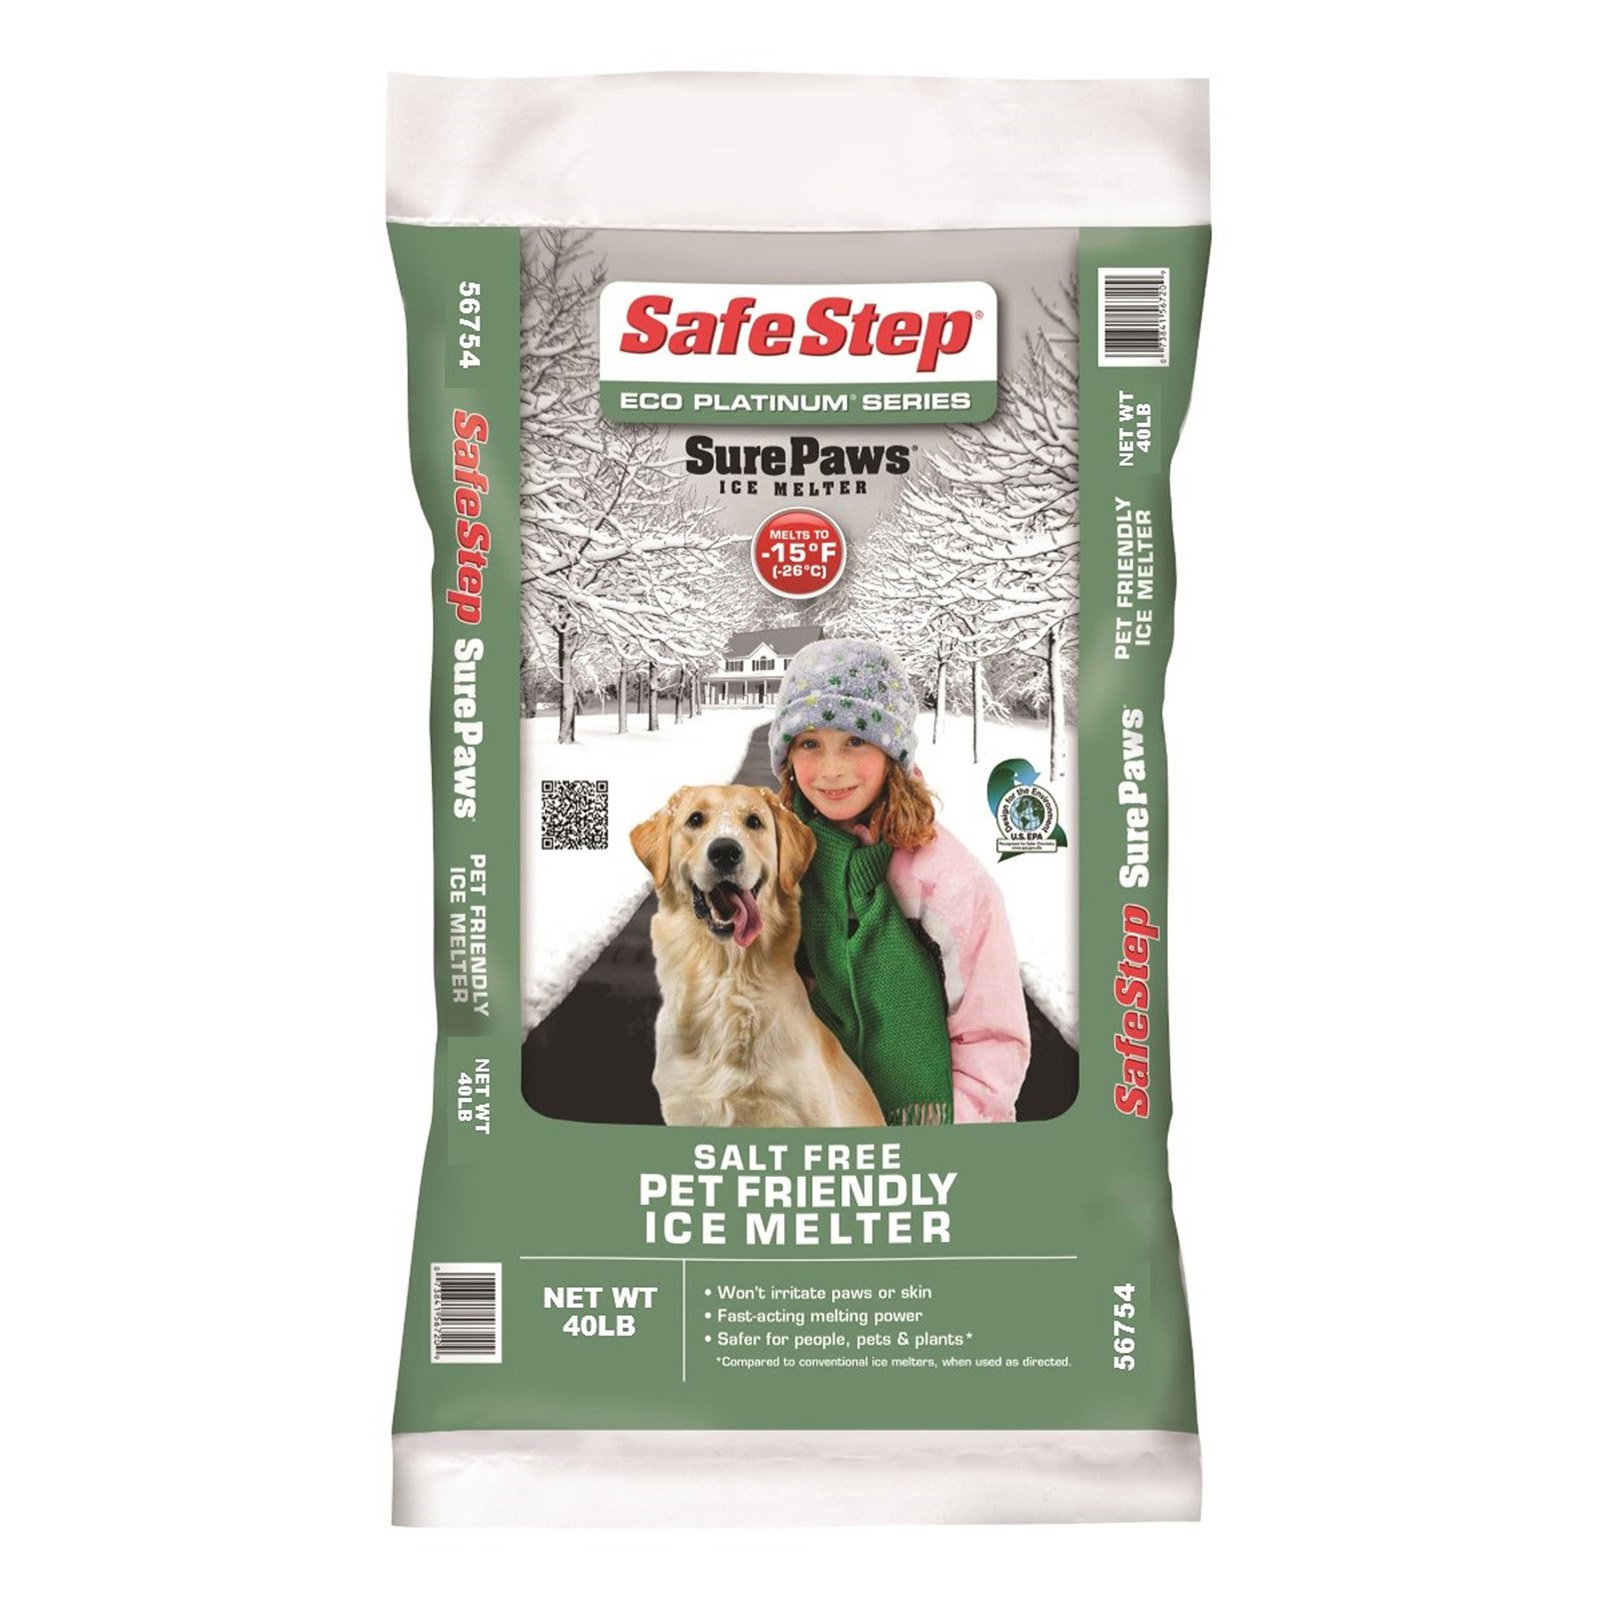 Safe Step Eco Platinum Series Sure Paws Ice Melter - 40 lbs.